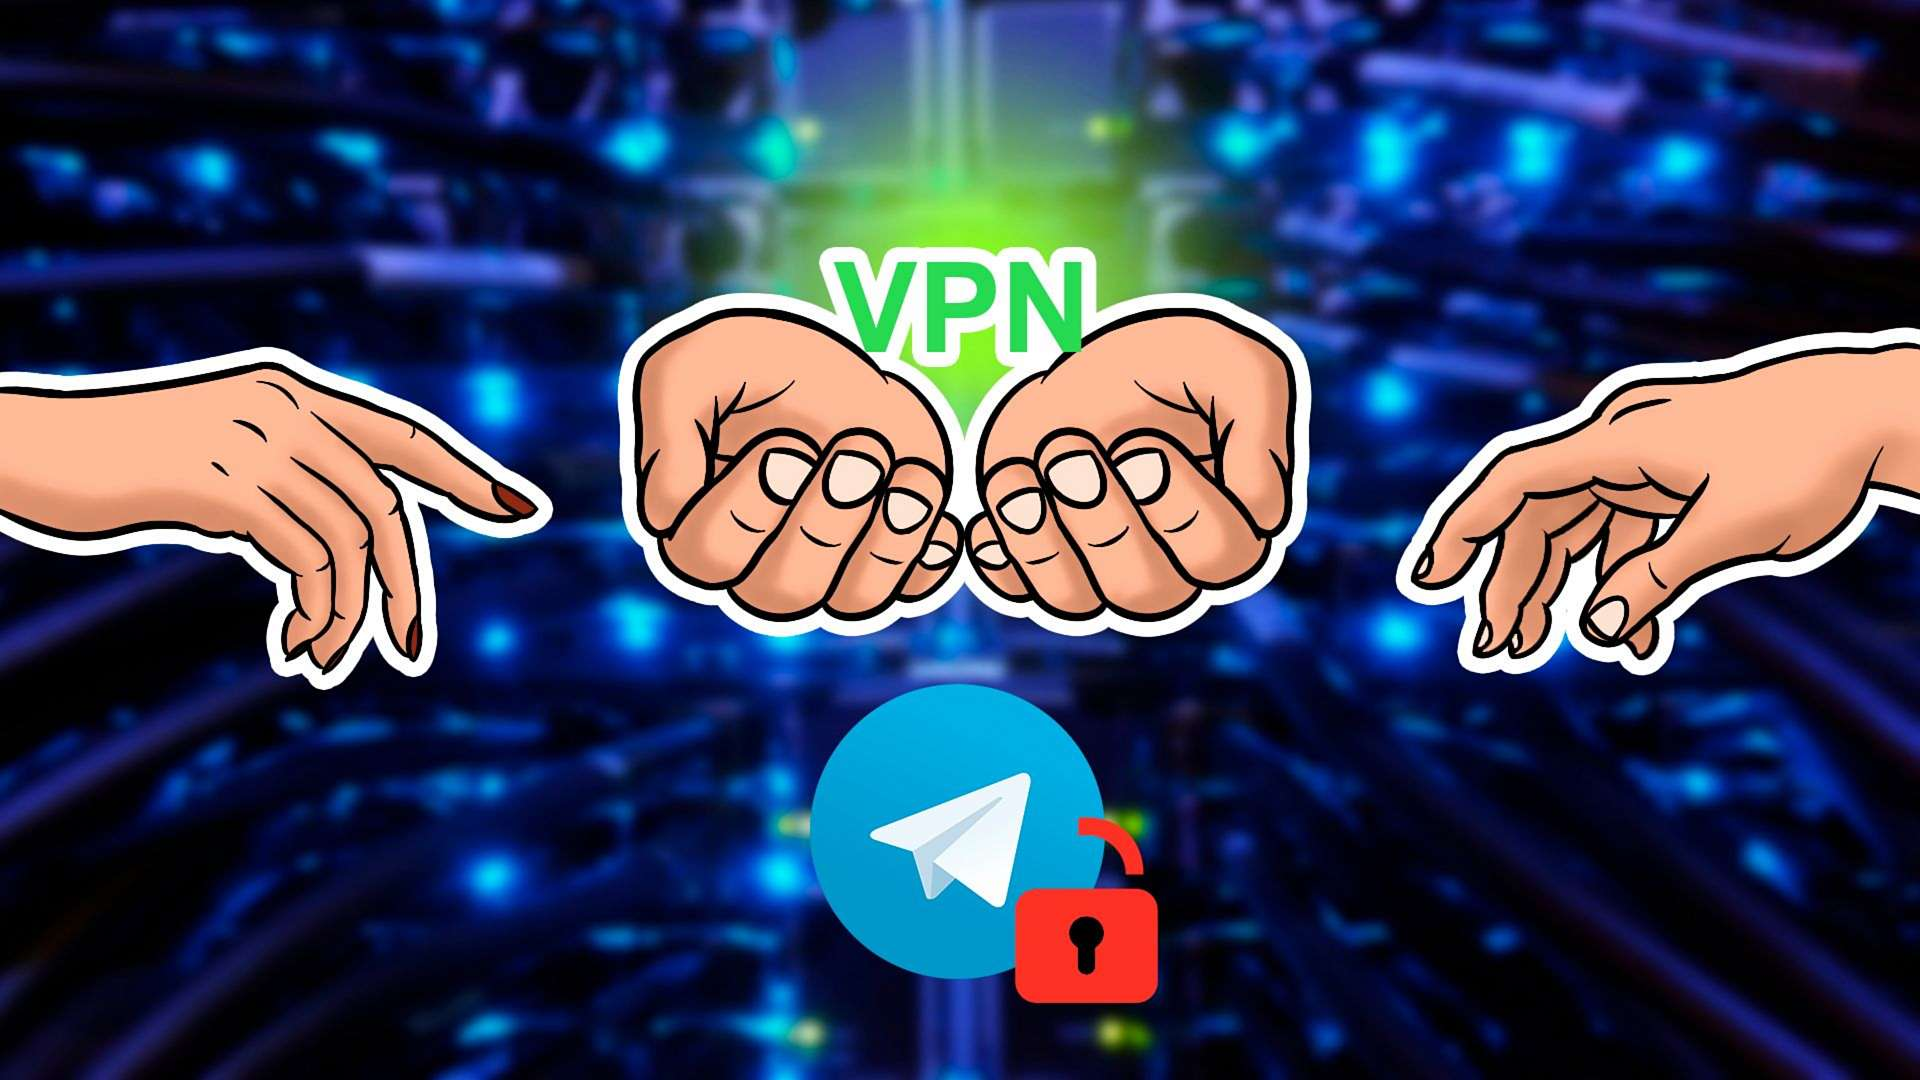 The Telegram blockage dramatically increased the demand for VPN services in data centers